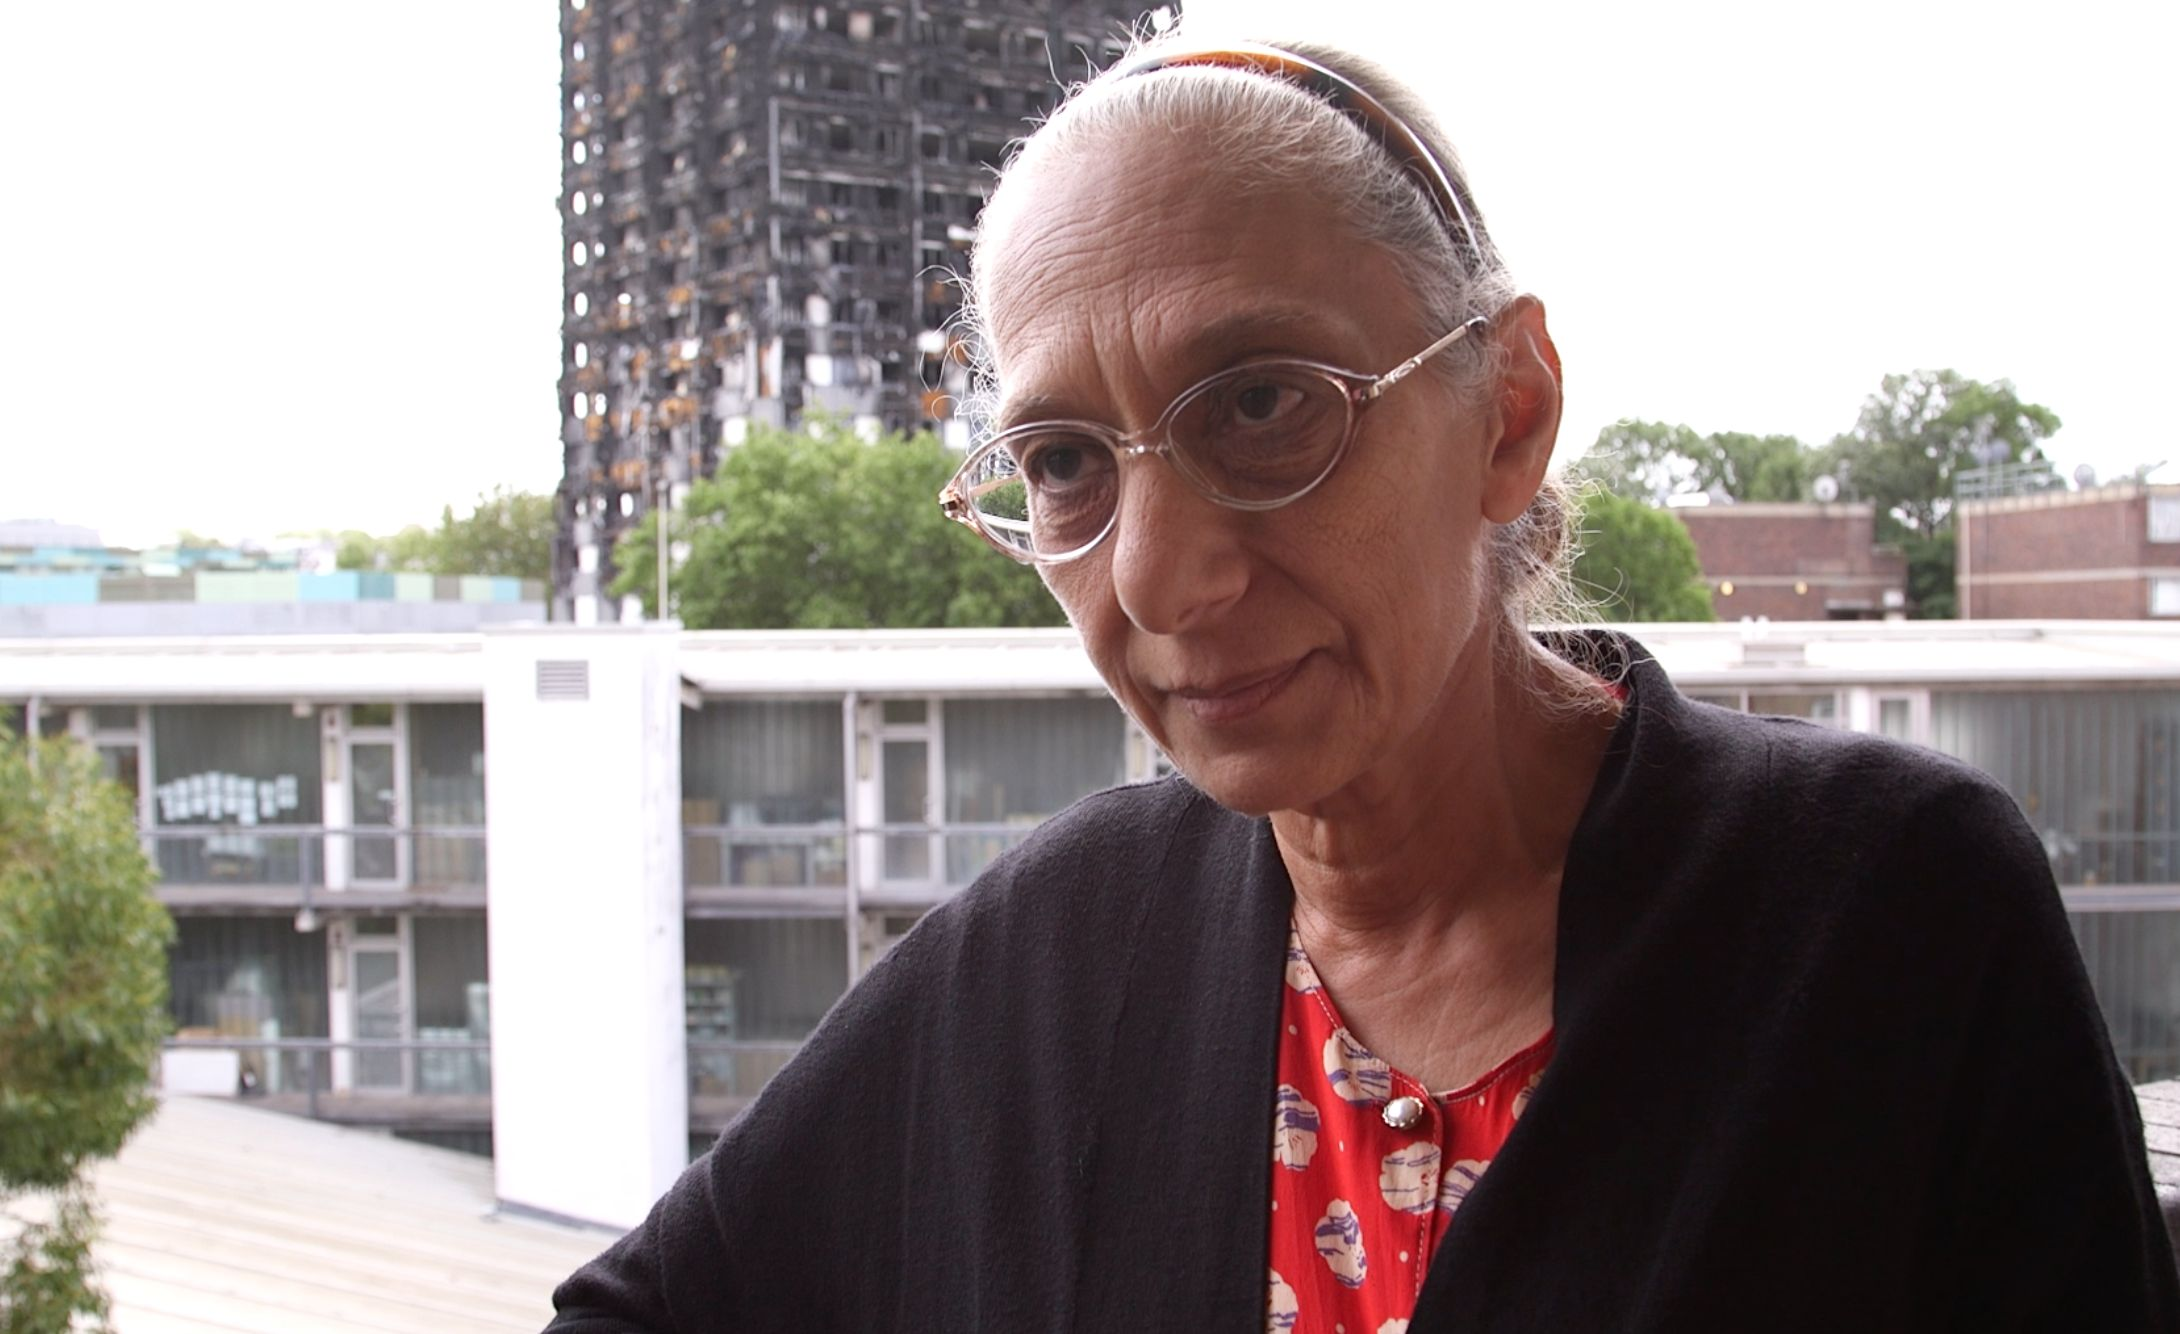 'Ignored' Victims Living Near Grenfell Tower Suffering From Strokes And Breathing